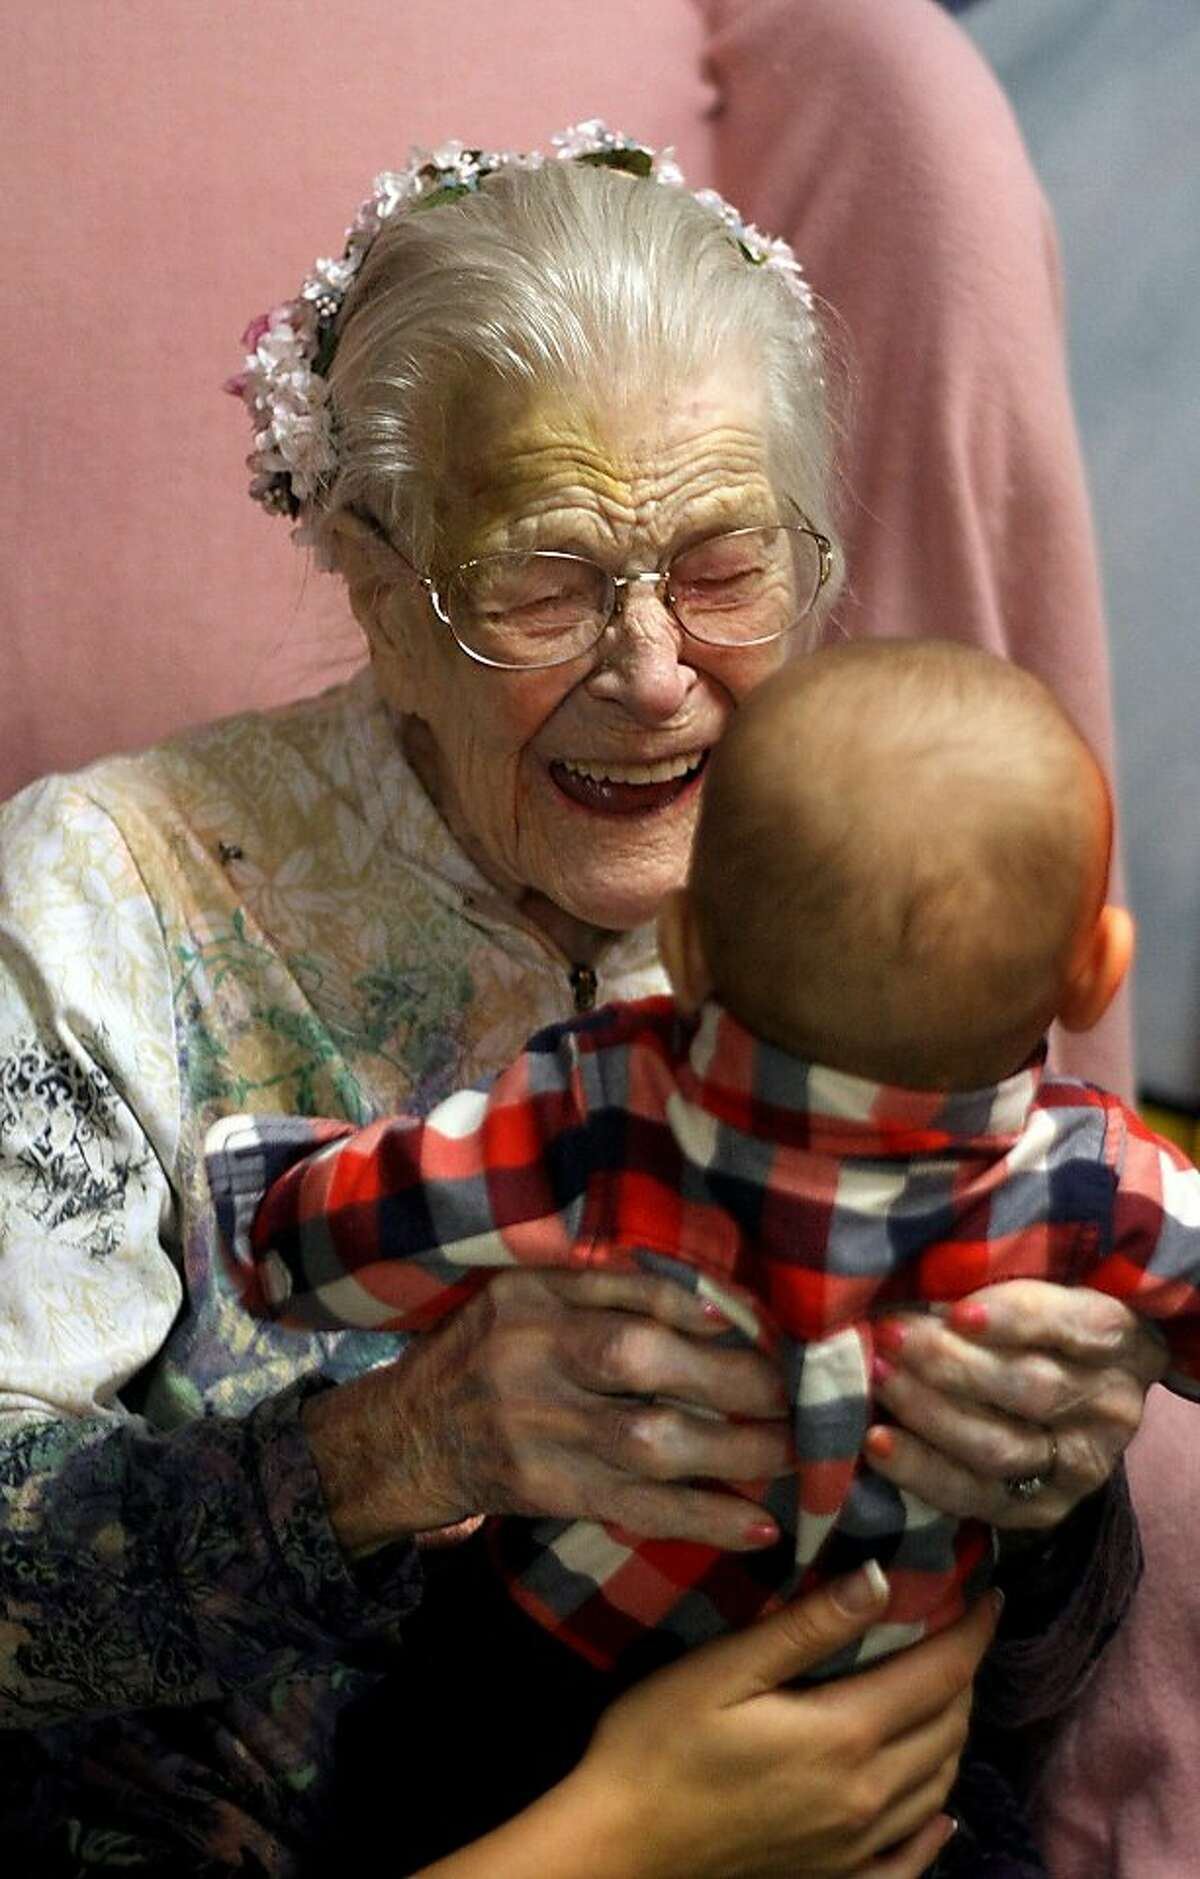 Across five generations: Emma Otis, who turned 112 Tuesday, excitedly holds her 3-month-old great-great-grandson Caleb Bennett for the first time in Poulsbo, Wash.